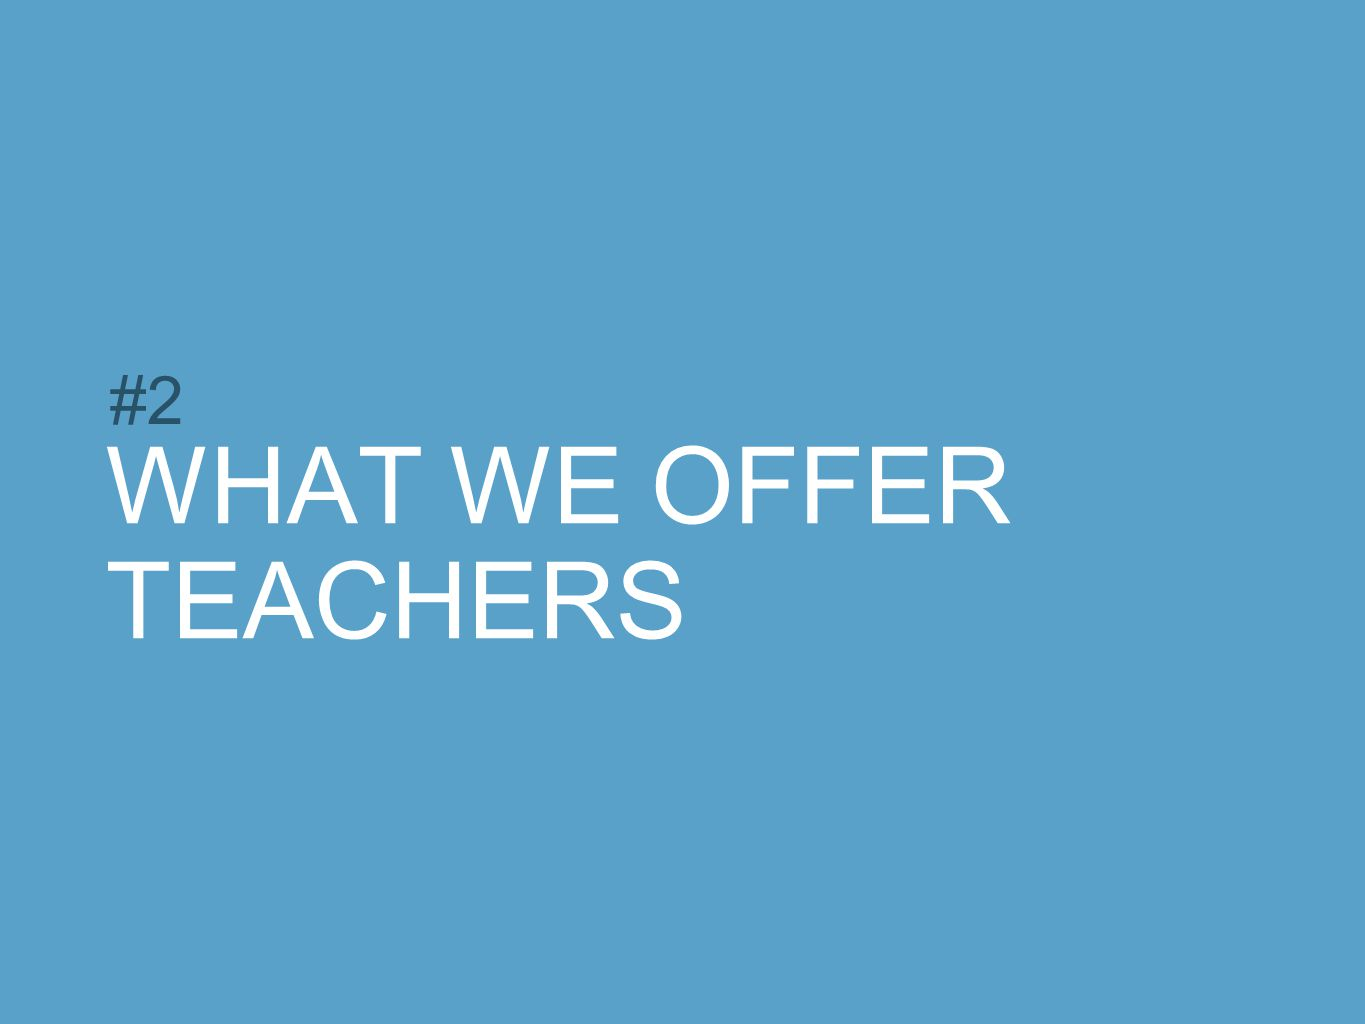 WHAT WE OFFER TEACHERS #2